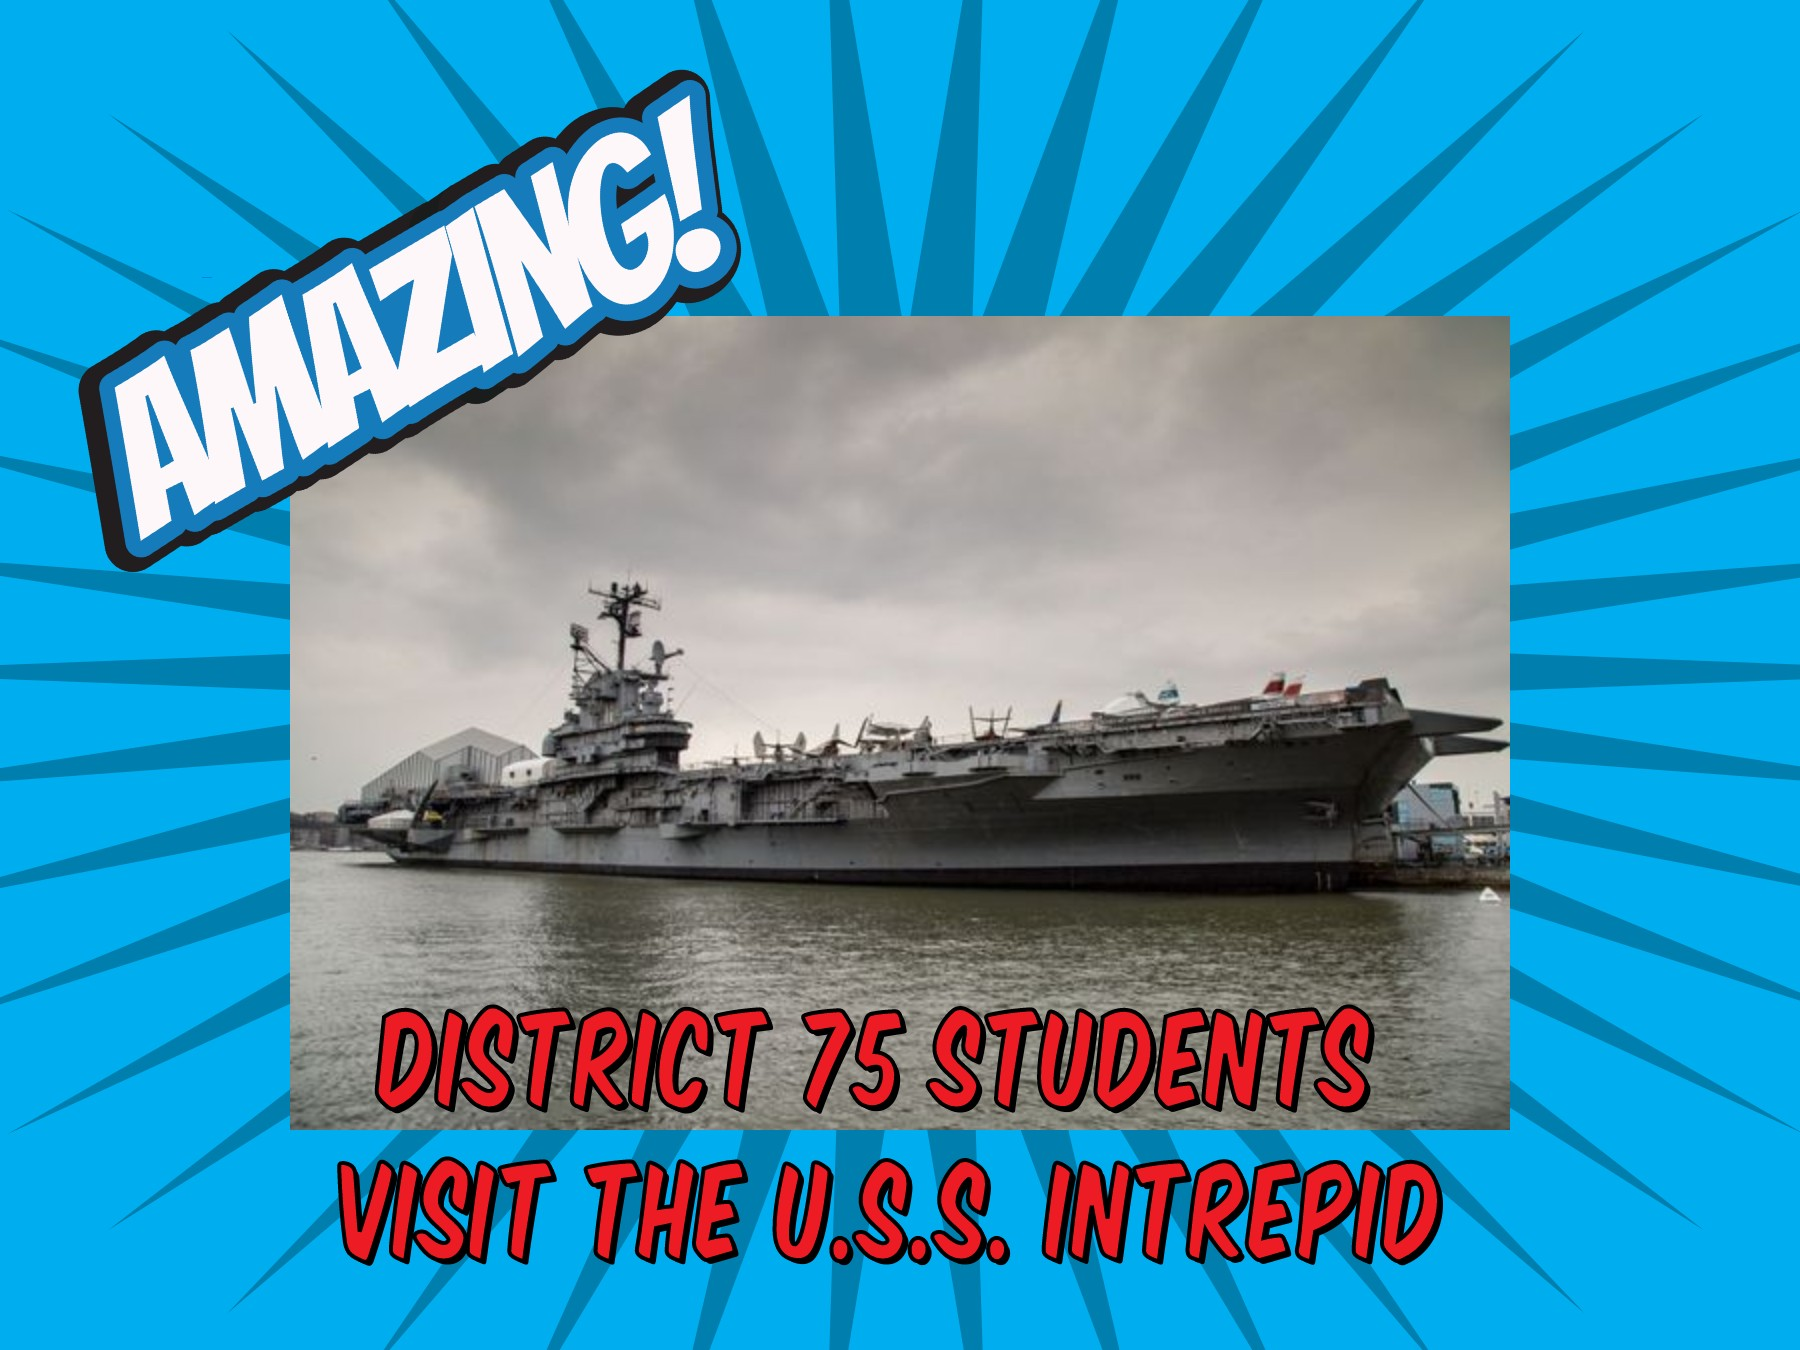 District 75 Students Visit the Intrepid